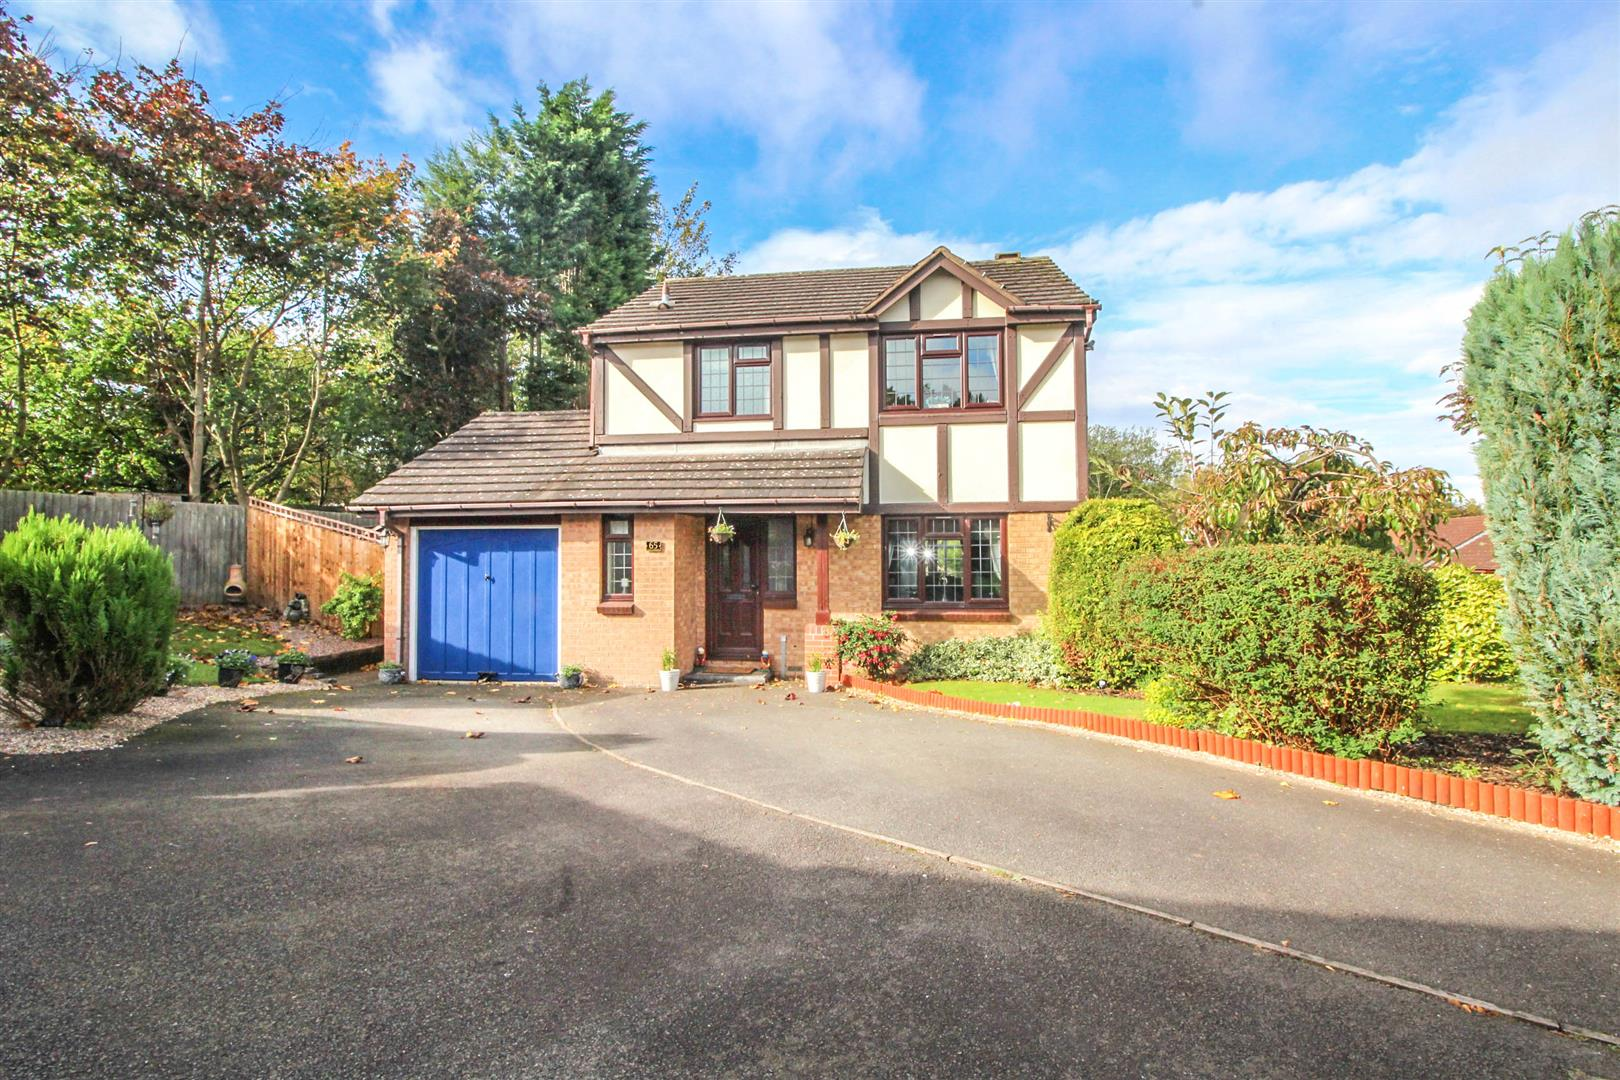 3 Bedrooms Detached House for sale in Plymouth Close, Redditch